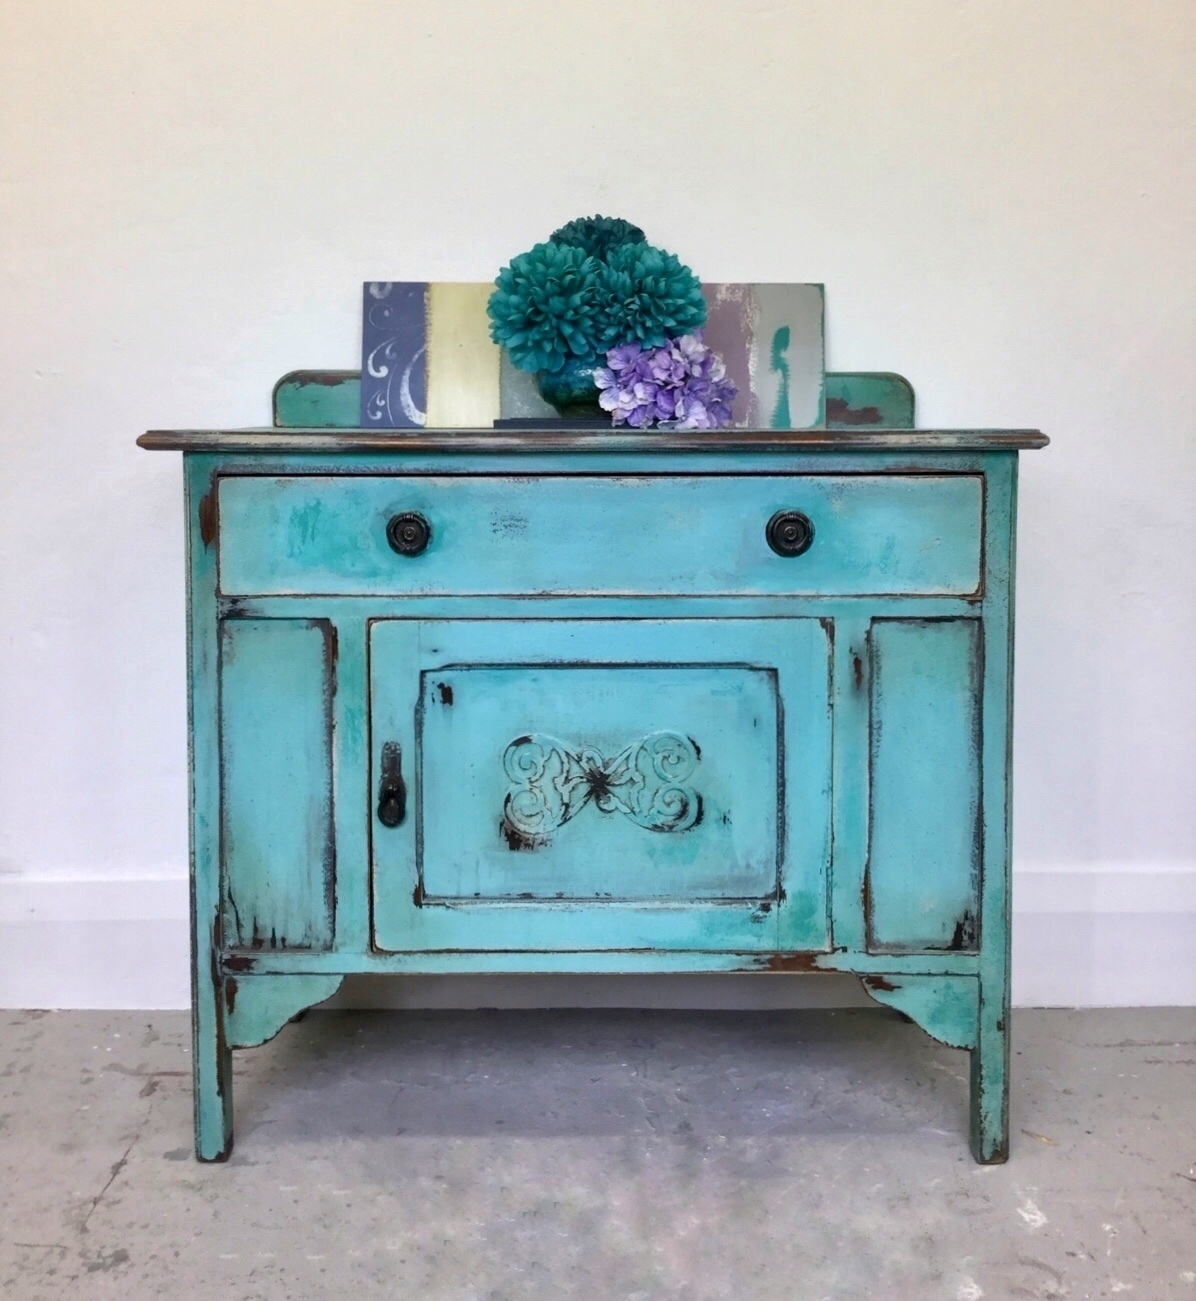 Outstanding Vintage Sideboard Hand Painted Cabinet Shabbychic Chalk Paint Furniture Download Free Architecture Designs Scobabritishbridgeorg